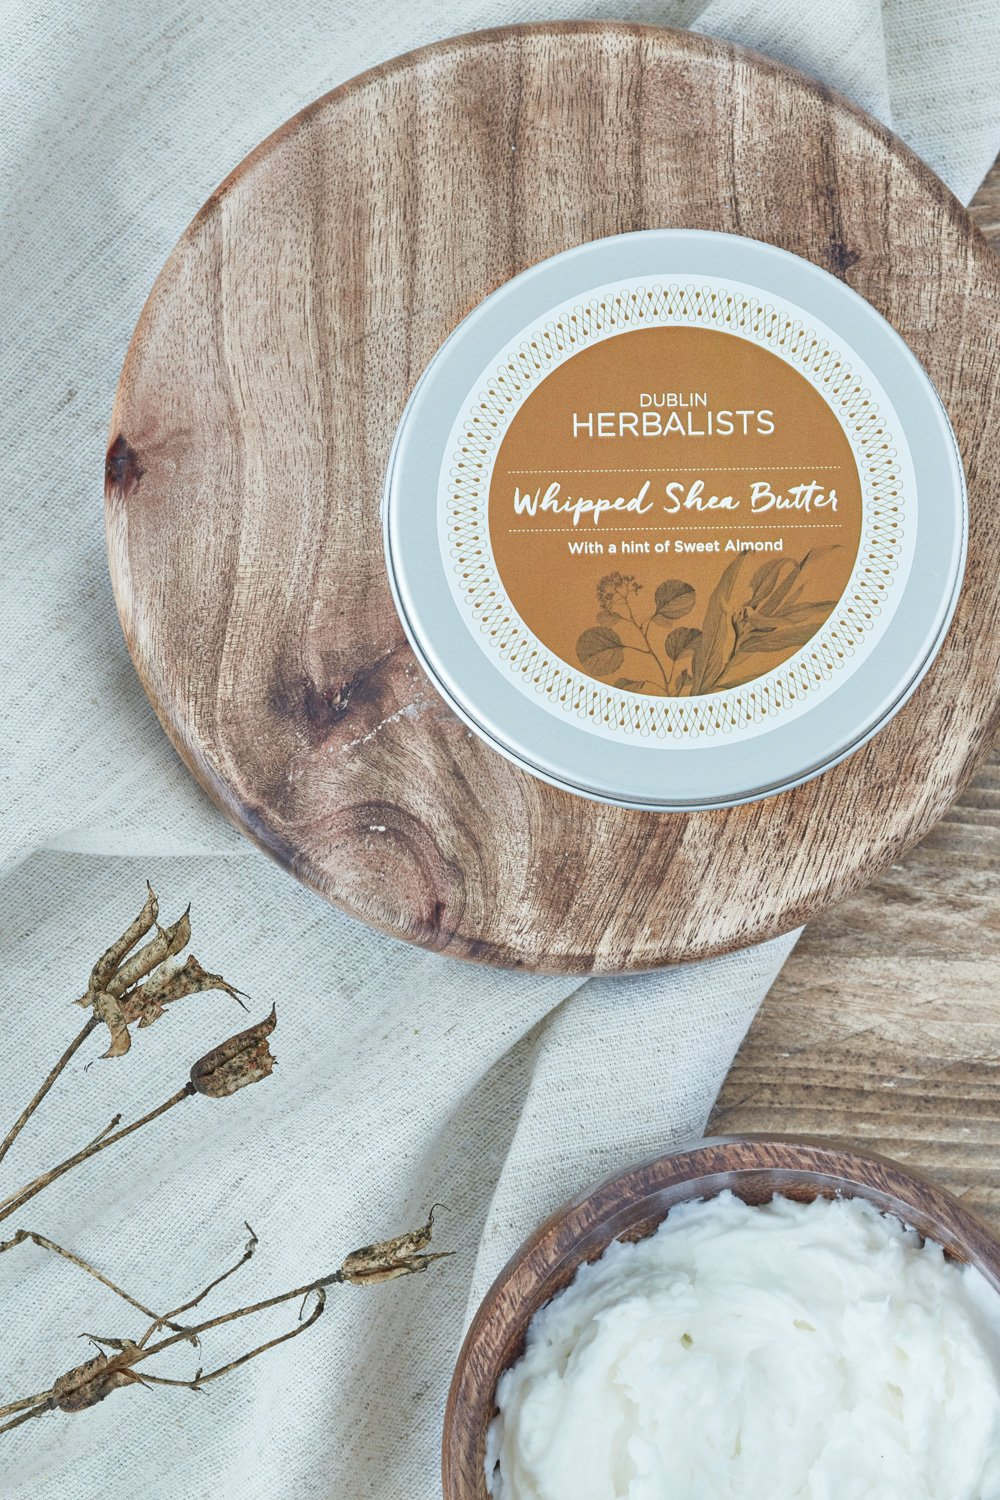 Dublin Herbalist - Whipped Shea Butter With A Hint Of Sweet Almond Oil - MIMI+MARTHA